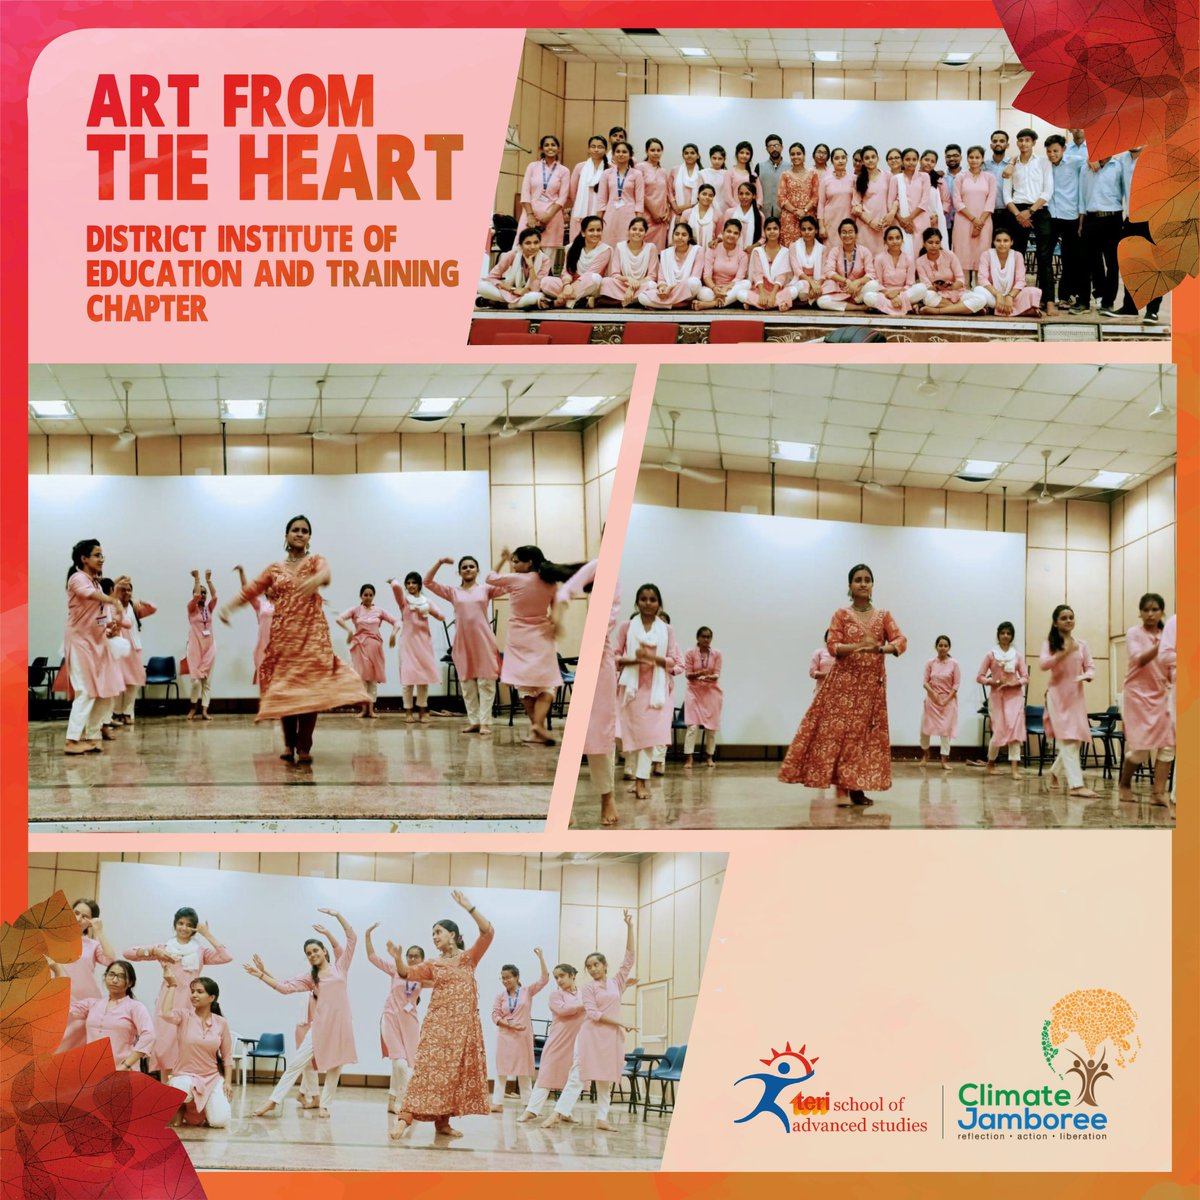 We are thrilled to announce the Art from the Heart chapter  launched at the District Institute of Education and Training, R K Puram. This collaboration is supported by State Council of Educational Research and Training, New Delhi.#art #heart #dance #sustainability #youth #climate